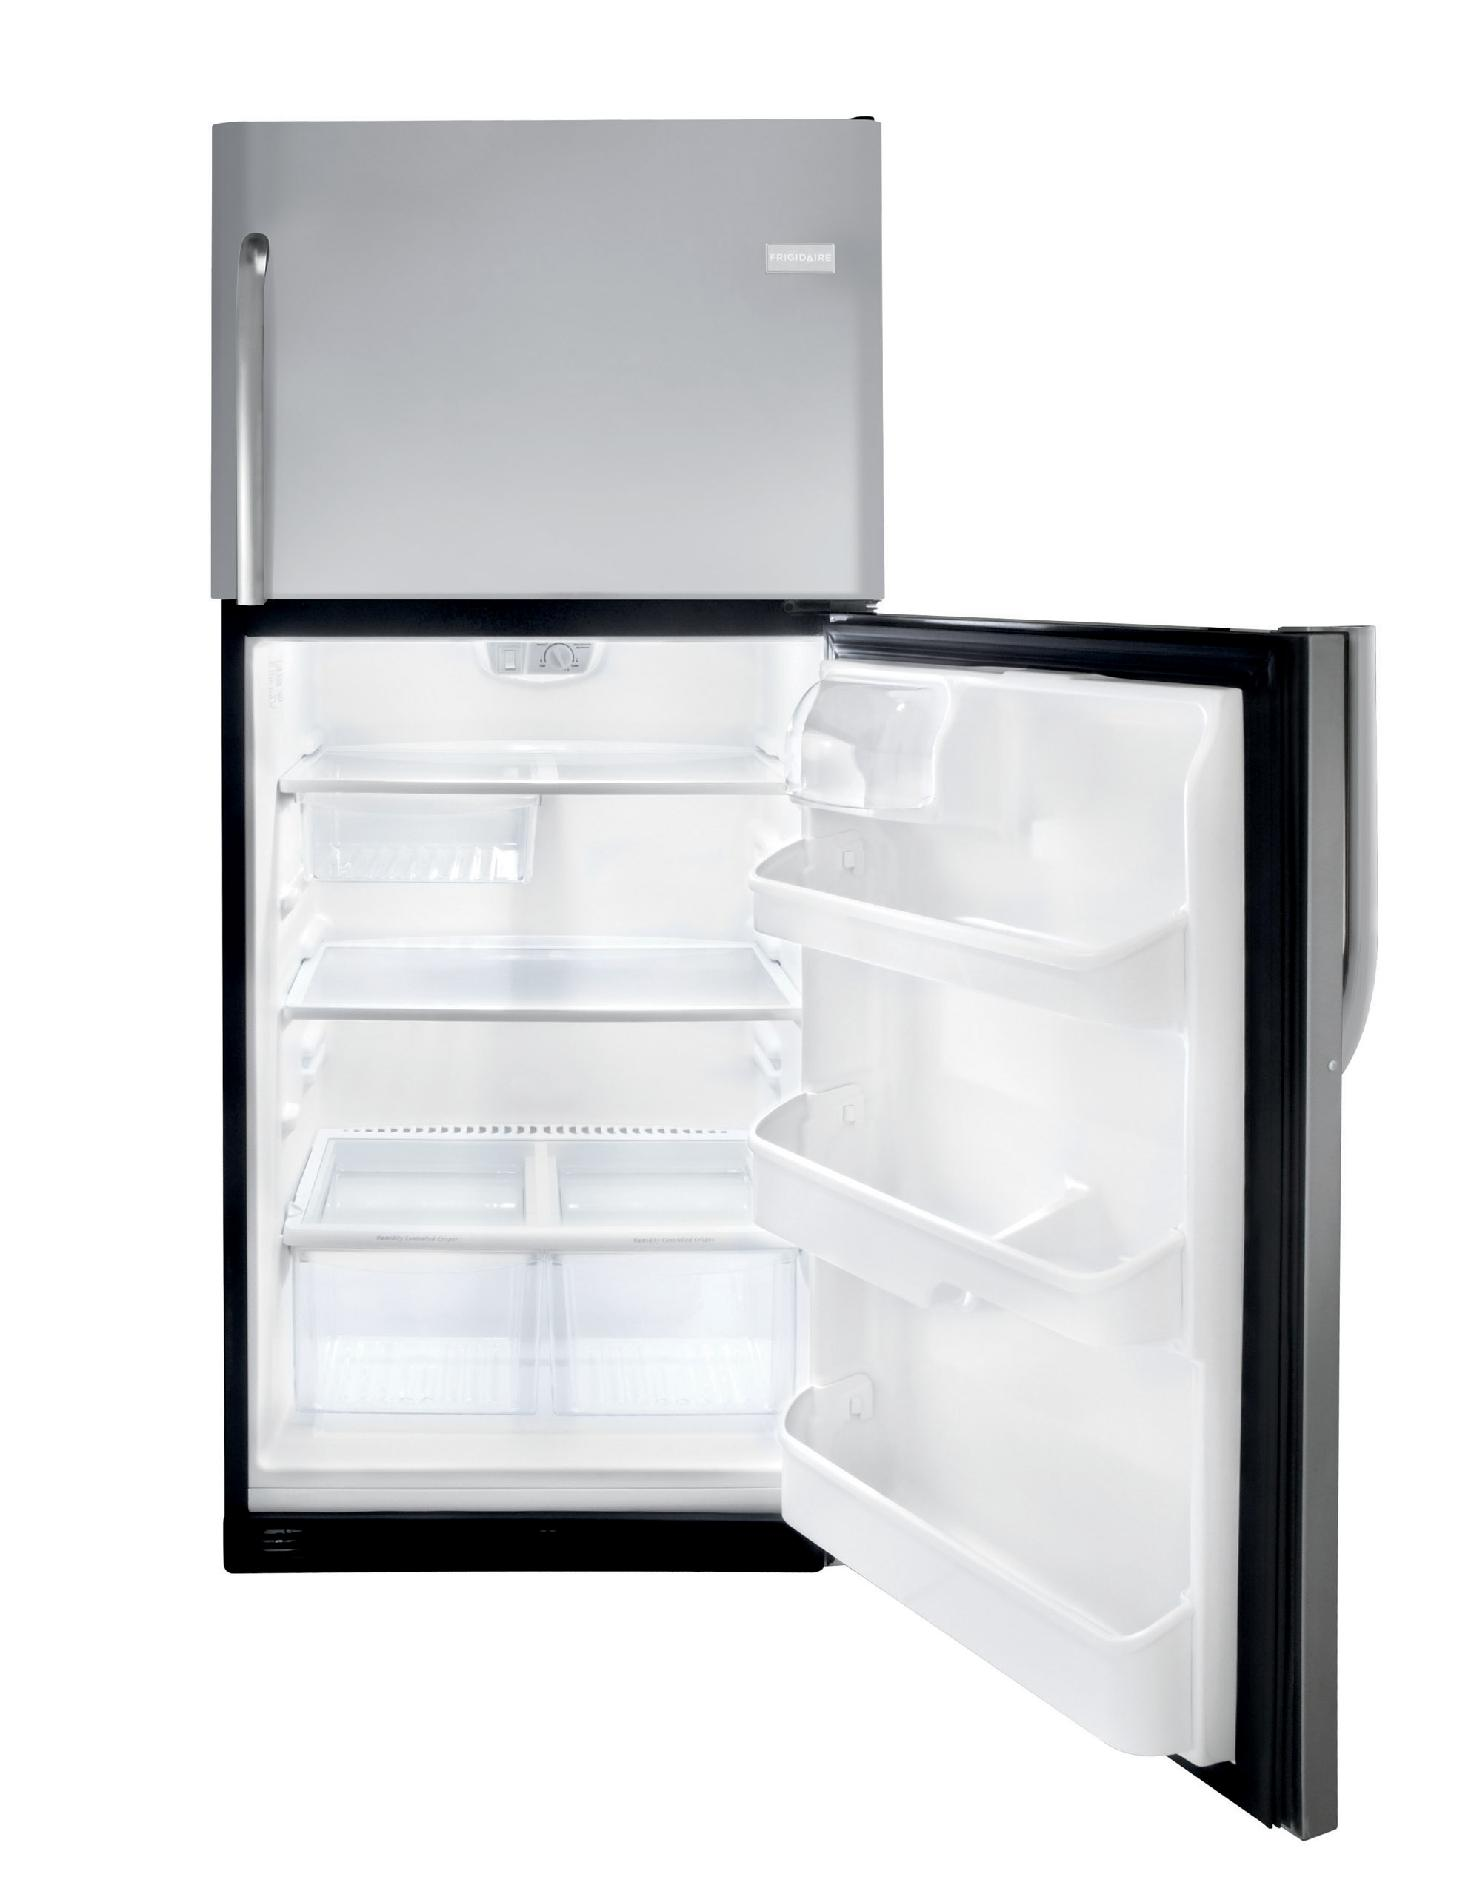 Frigidaire 20.6 cu. ft. Top-Freezer Refrigerator - Stainless Steel